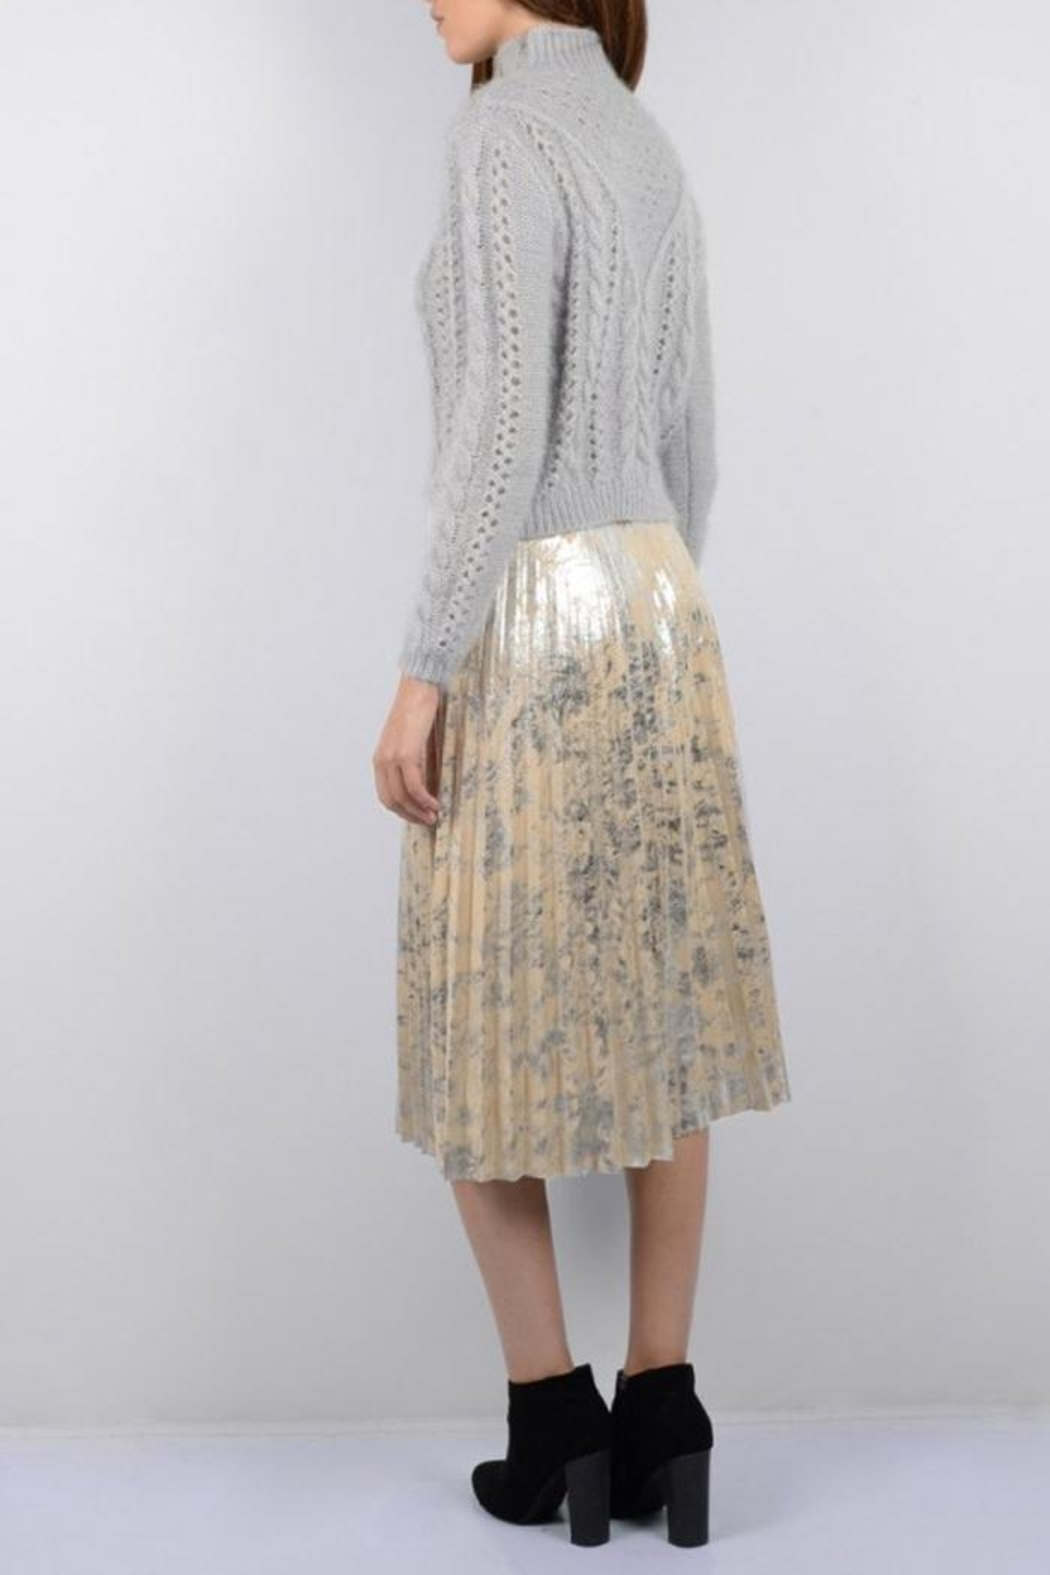 Molly Bracken Silver Suede Skirt - Front Full Image